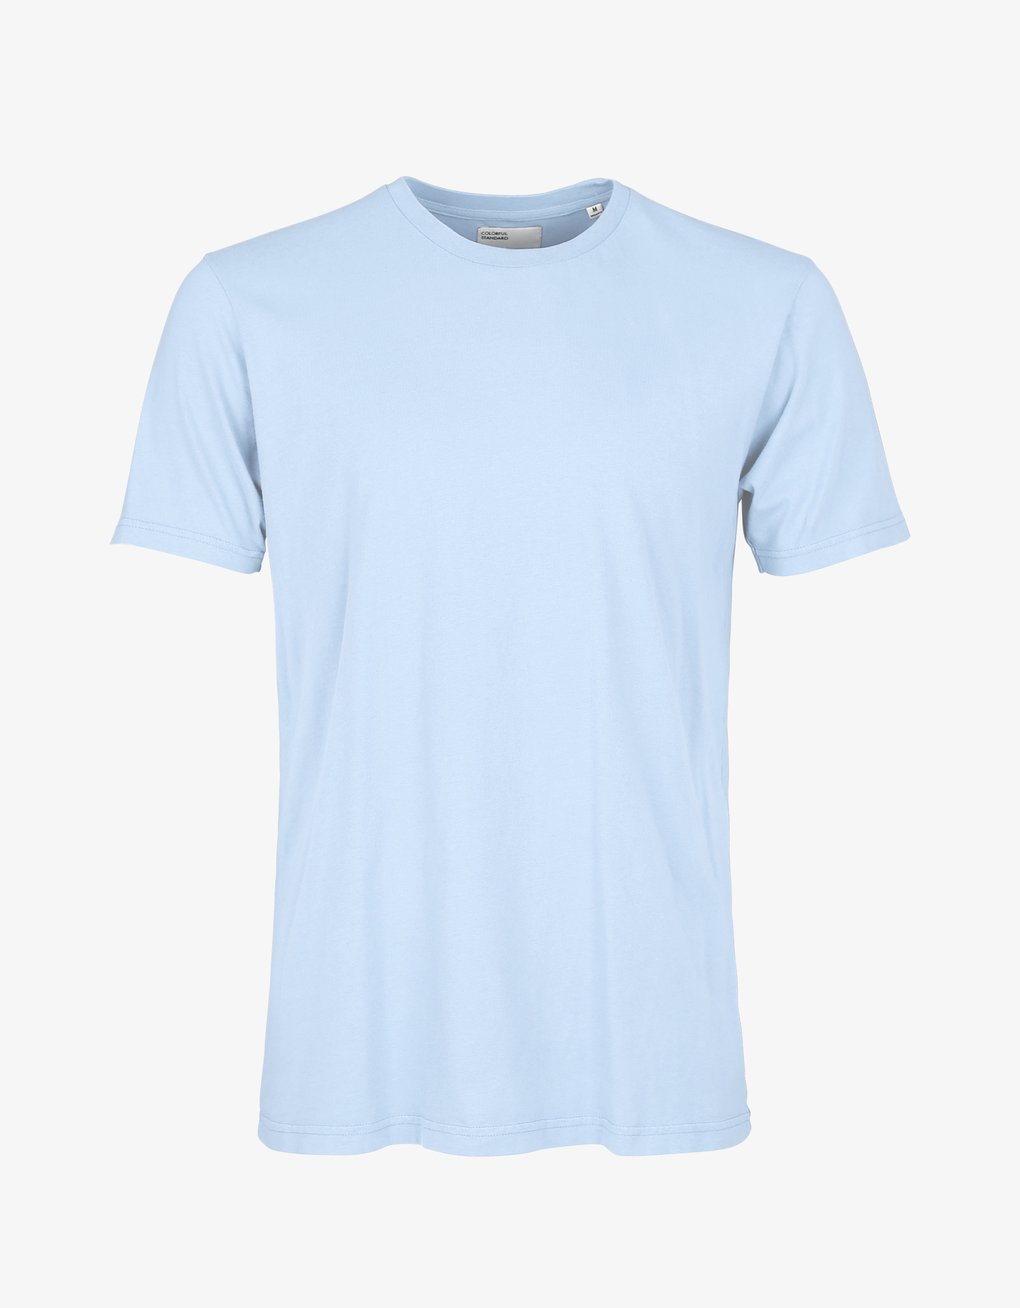 Colorful Standard T-Shirt - Polar Blue